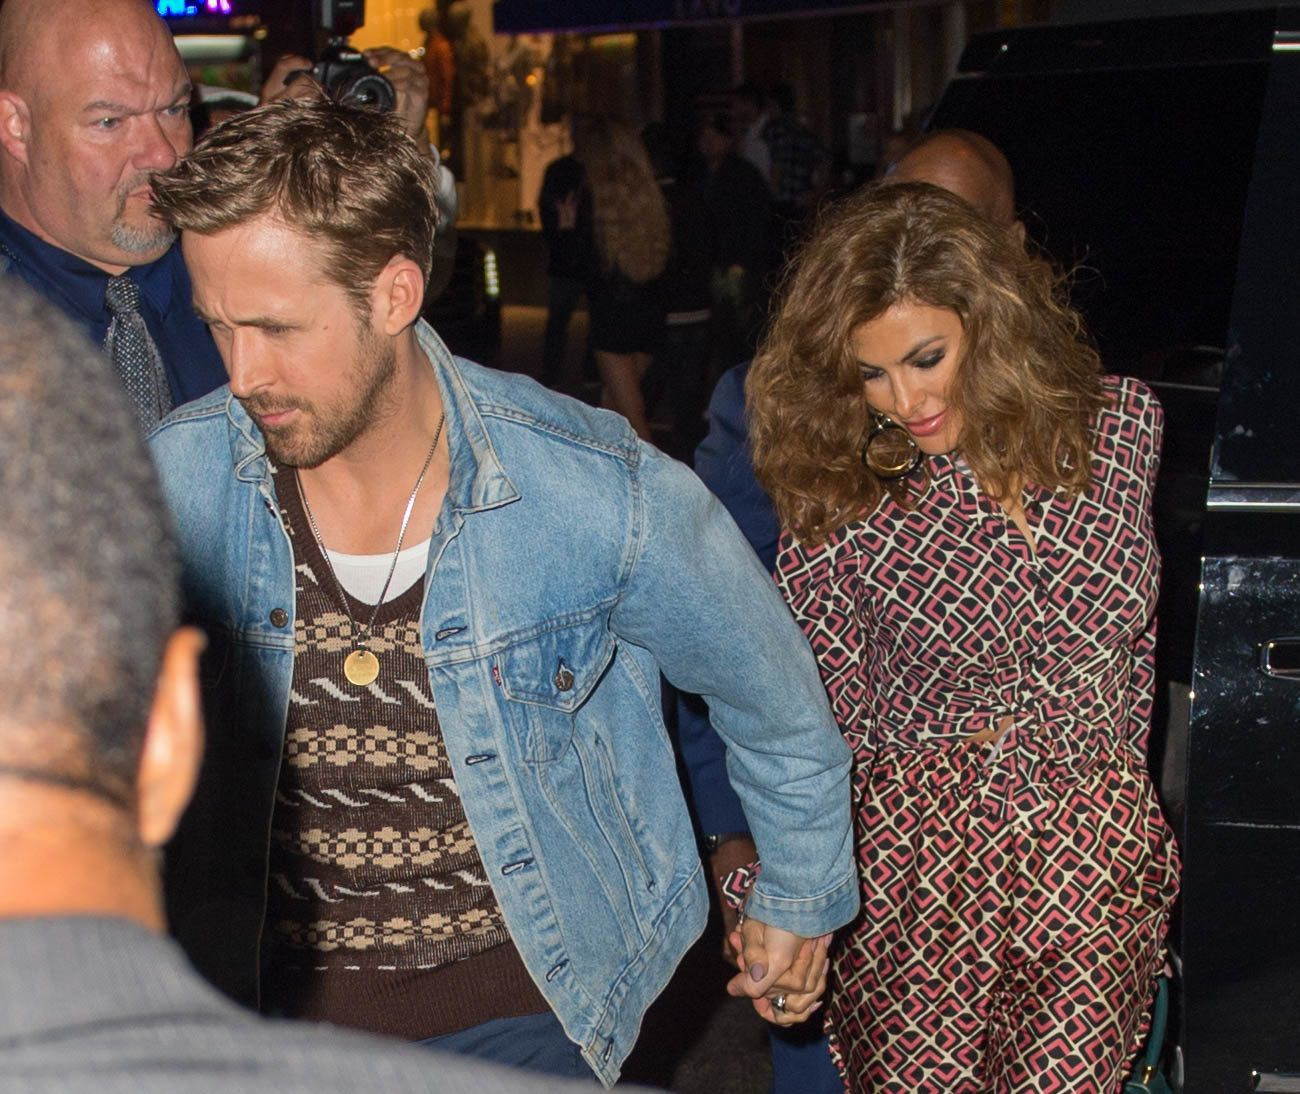 Eva Mendes and Ryan Gosling are spotted partying after SNL in New York, USA.